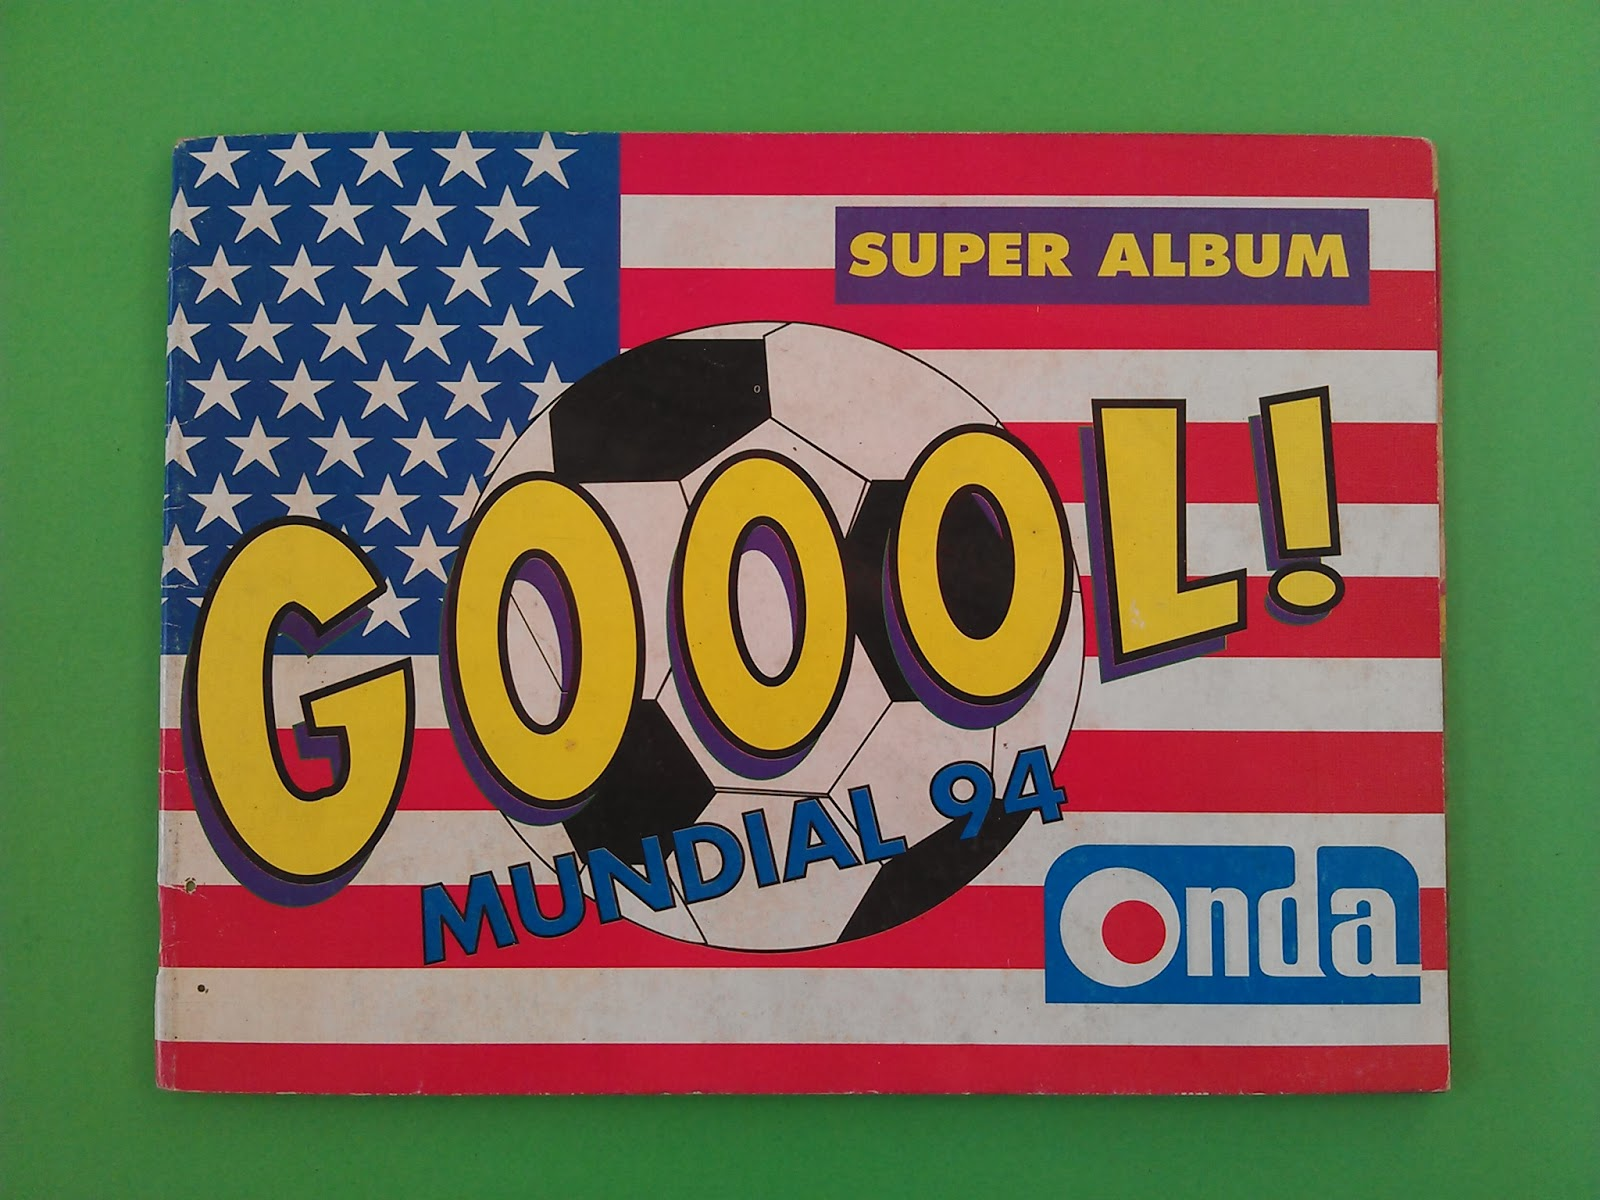 World Cup Albums 1994 USA Onda